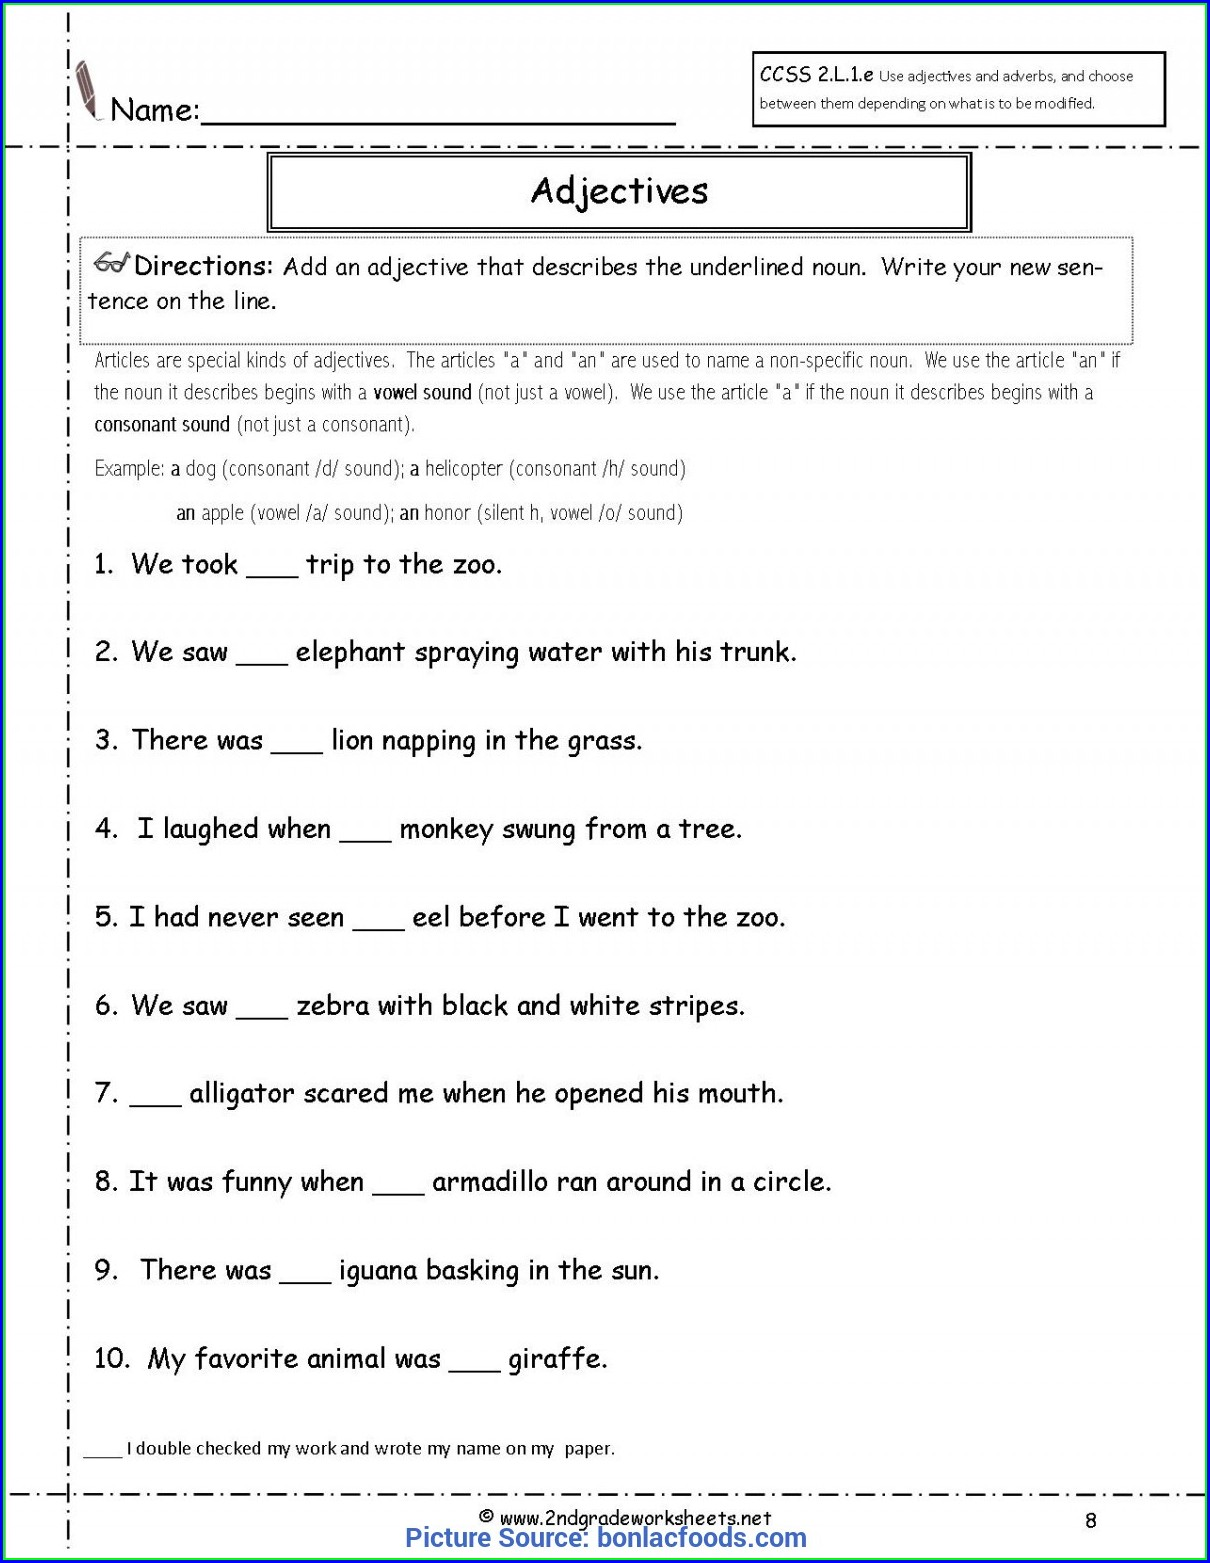 Adjectives Worksheets For Grade 5 With Answers